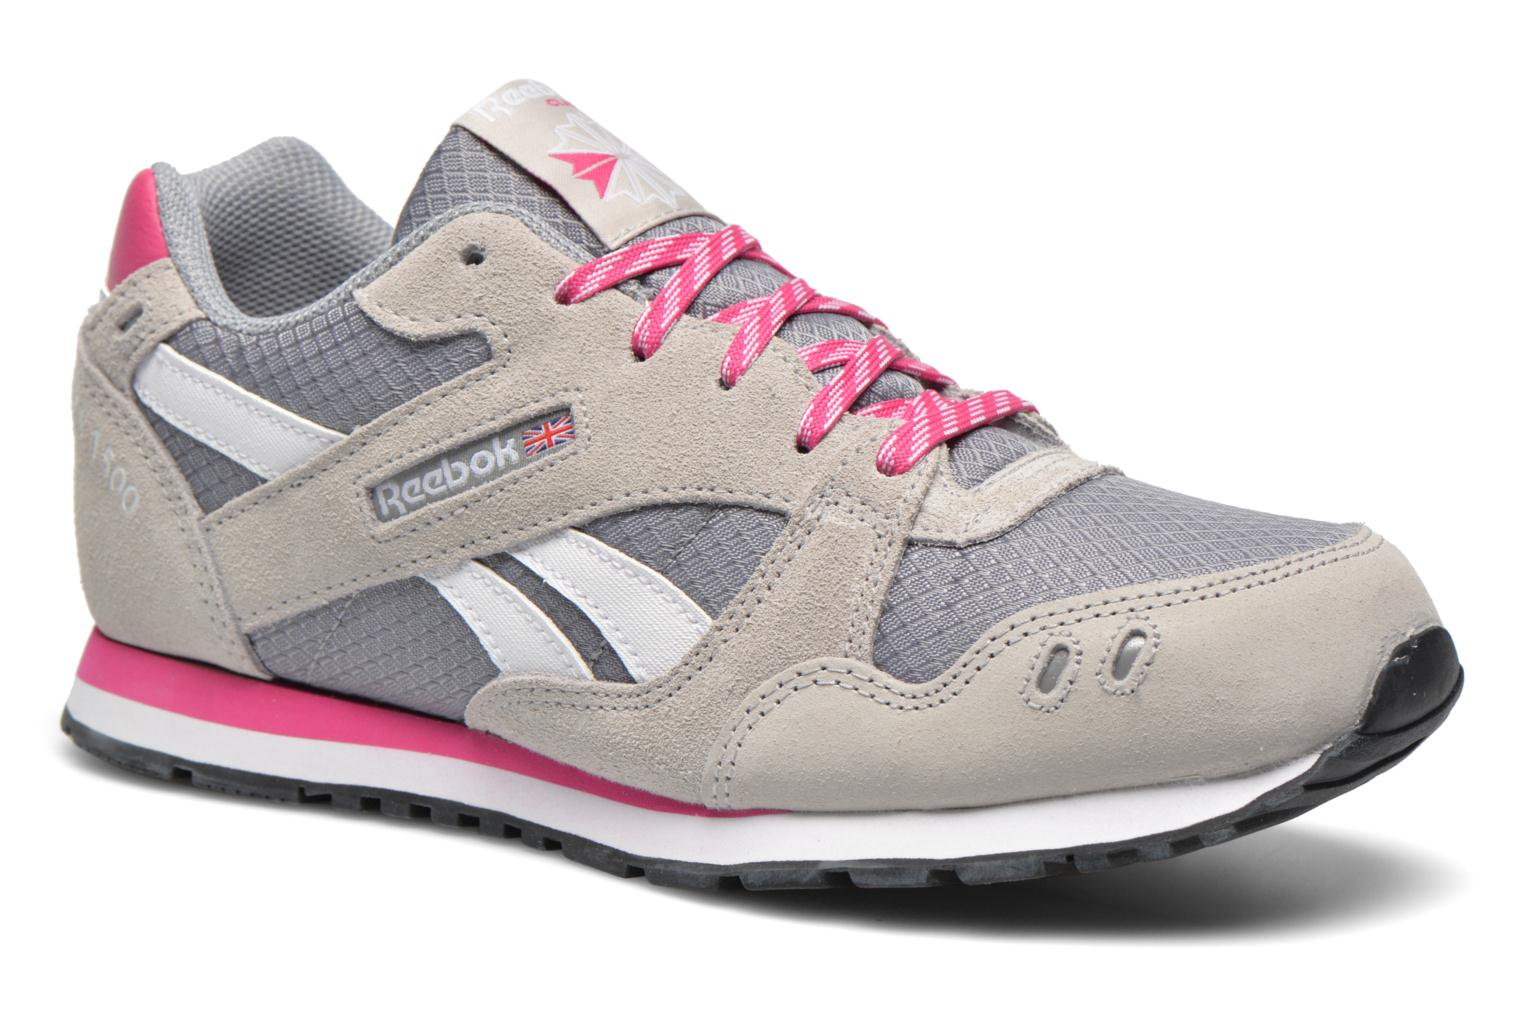 newest e7050 93e79 ... Trainers Reebok GL 1500 Grey detailed view Pair view ...